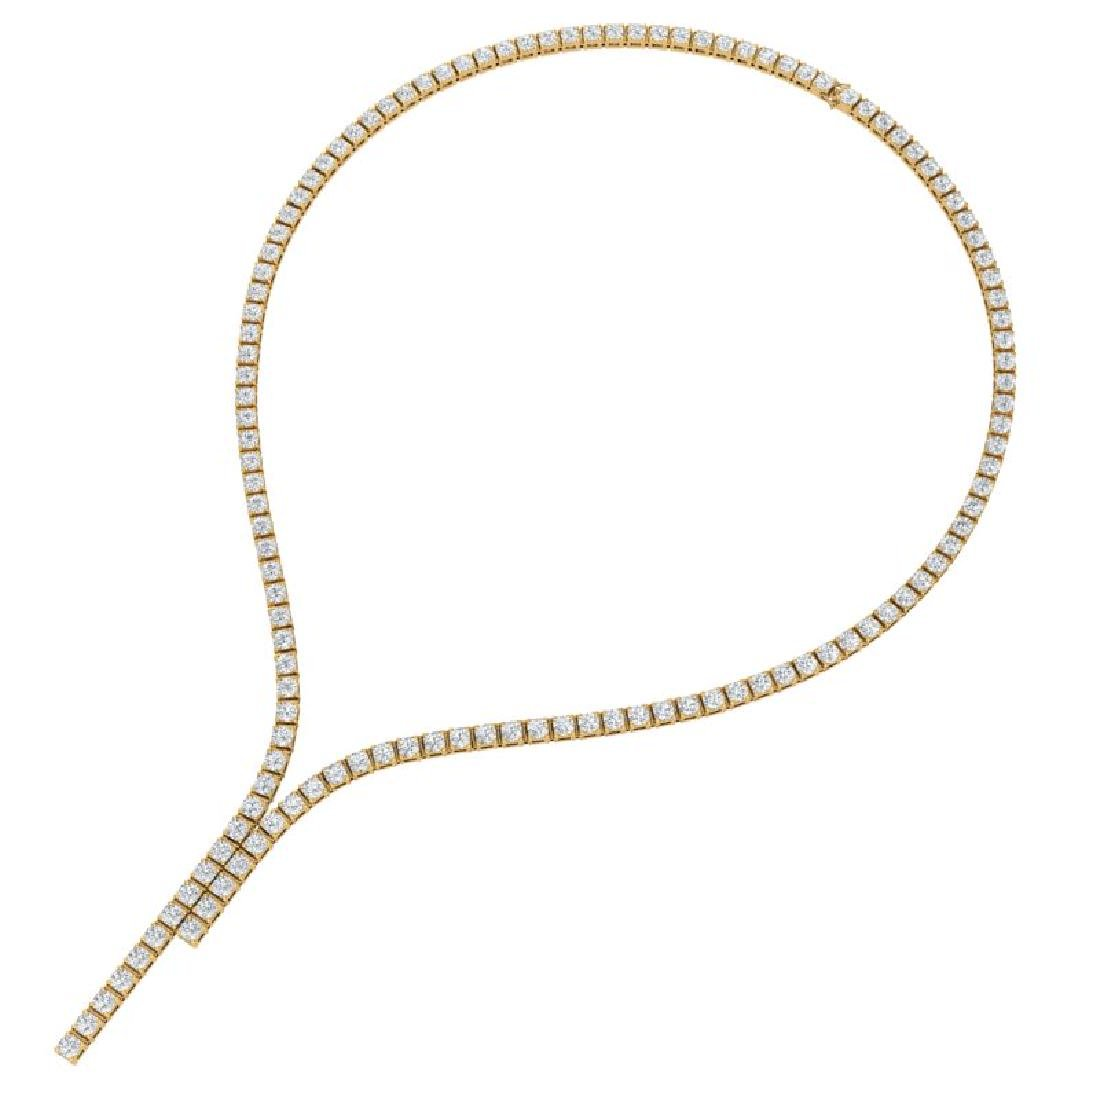 15 CTW Certified SI/I Diamond Necklace 18K Yellow Gold - 3